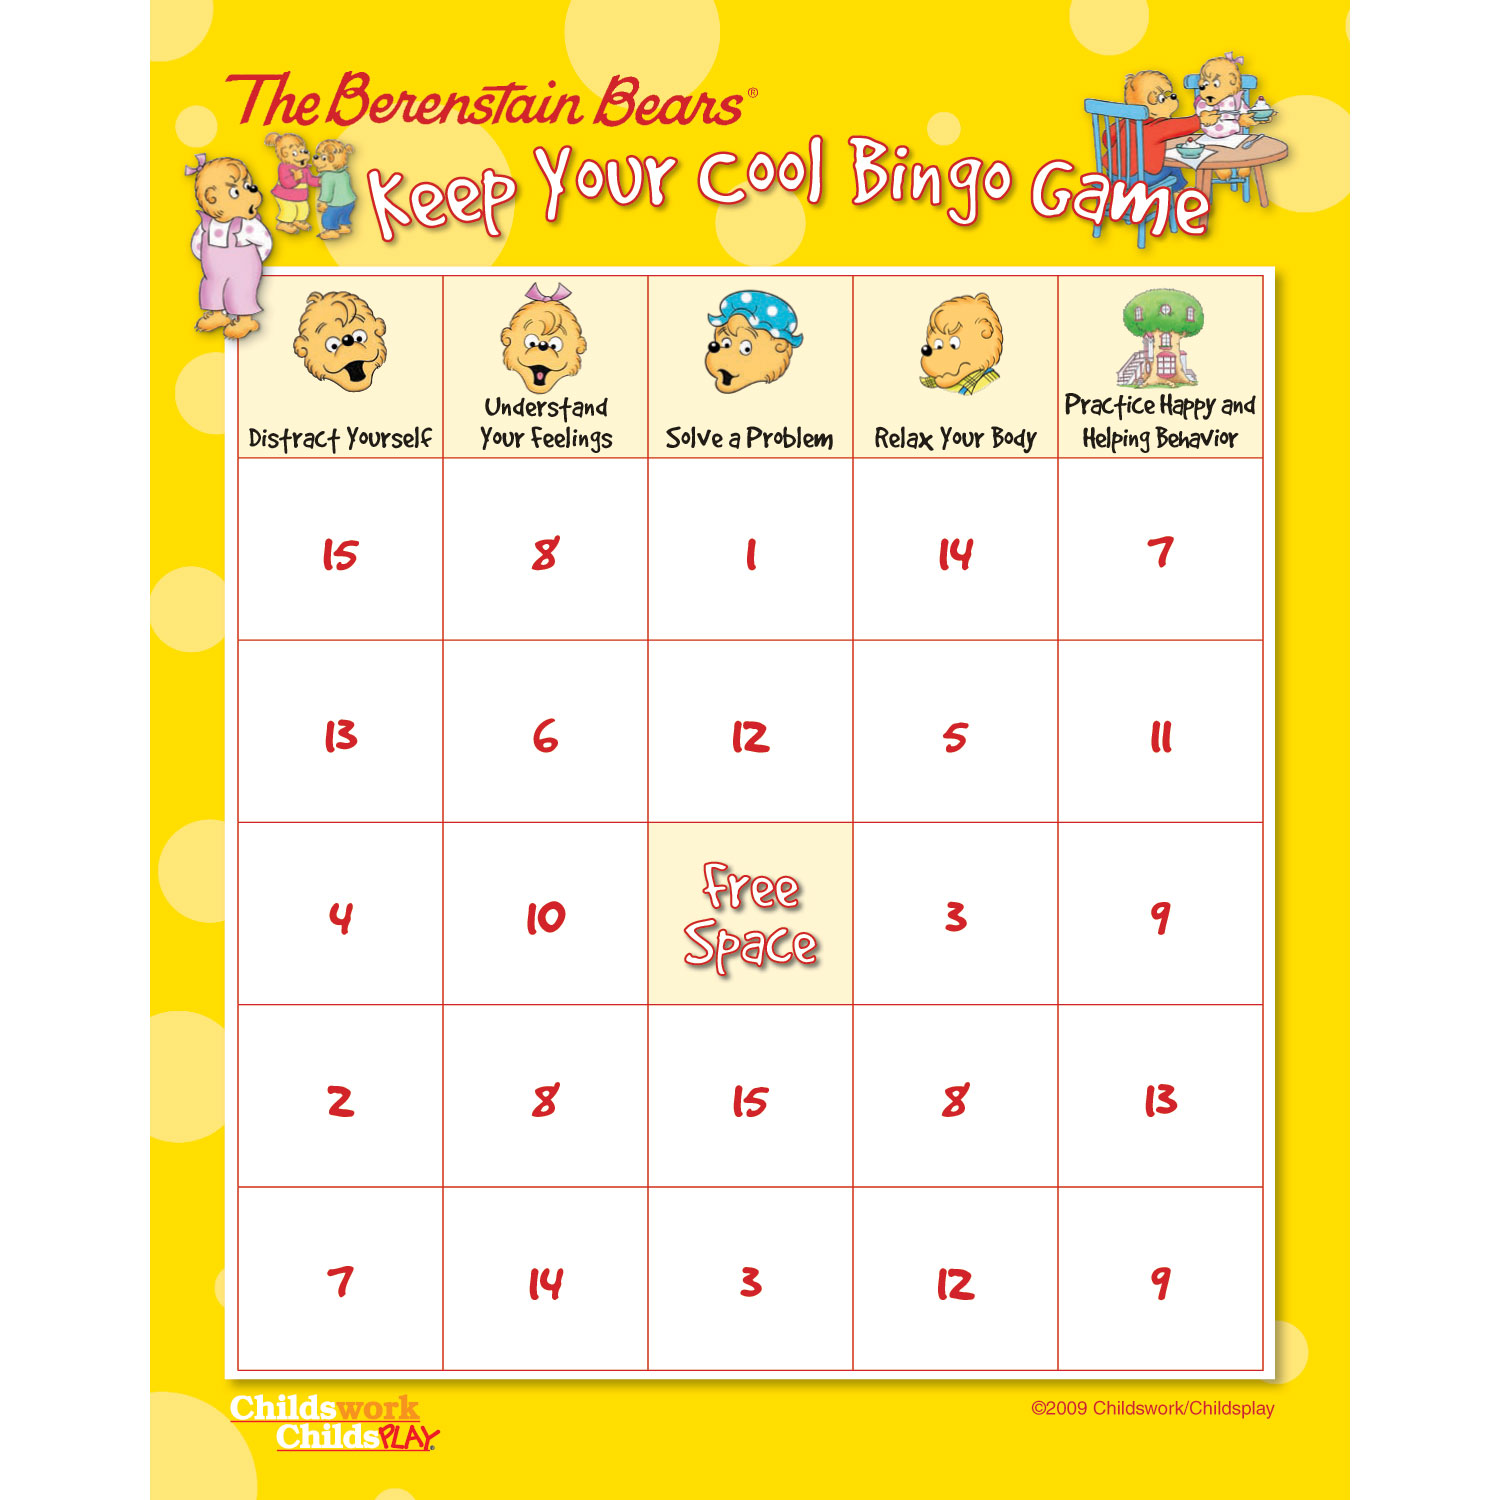 The Berenstain Bears Keep Your Cool Bingo Game